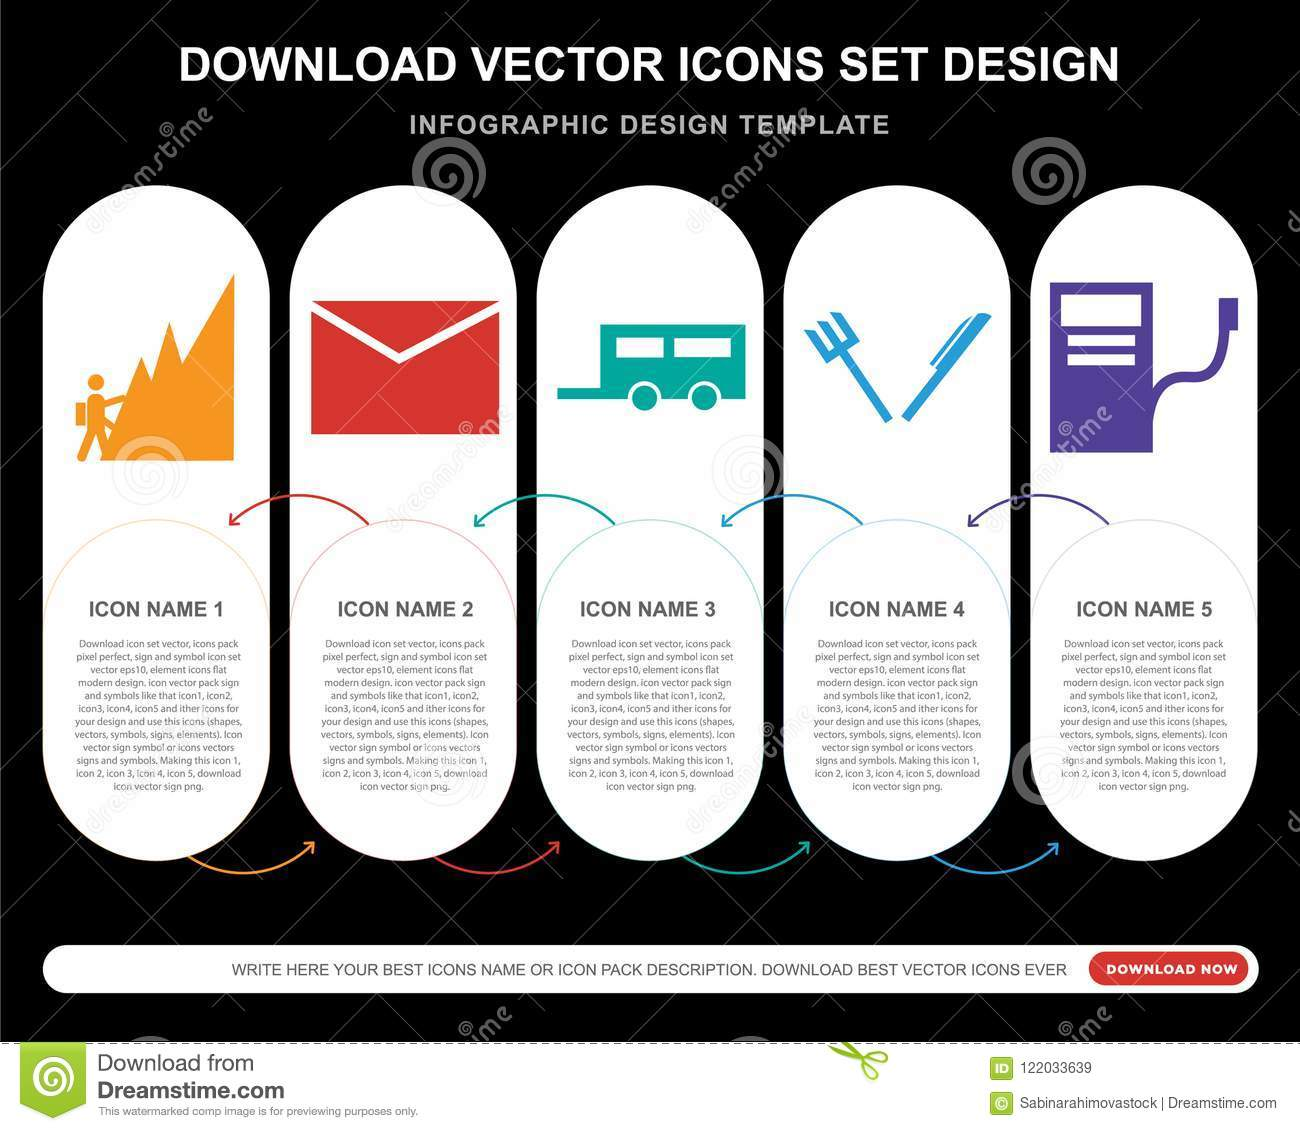 5 Vector Icons Such As Climb, Envelope, Road Caravan, Knife And Fork